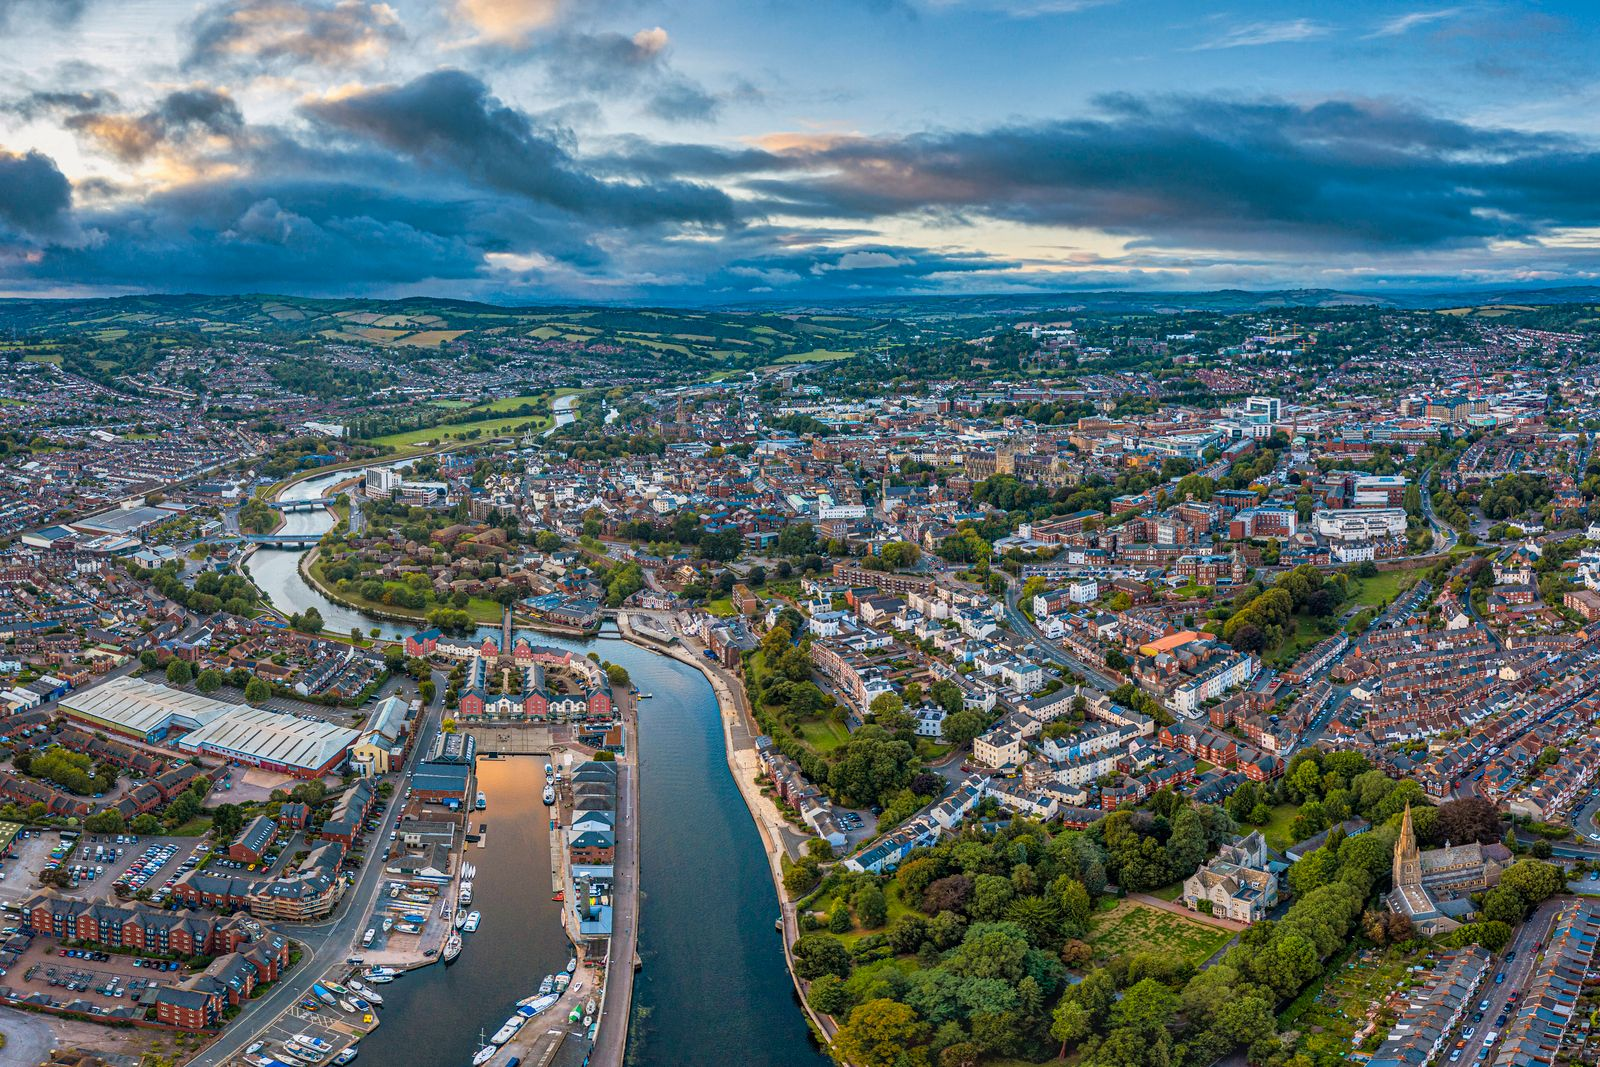 Aerial view over Exeter city centre and the River Exe, Exeter, Devon, England, United Kingdom, Europe PUBLICATIONxINxGER